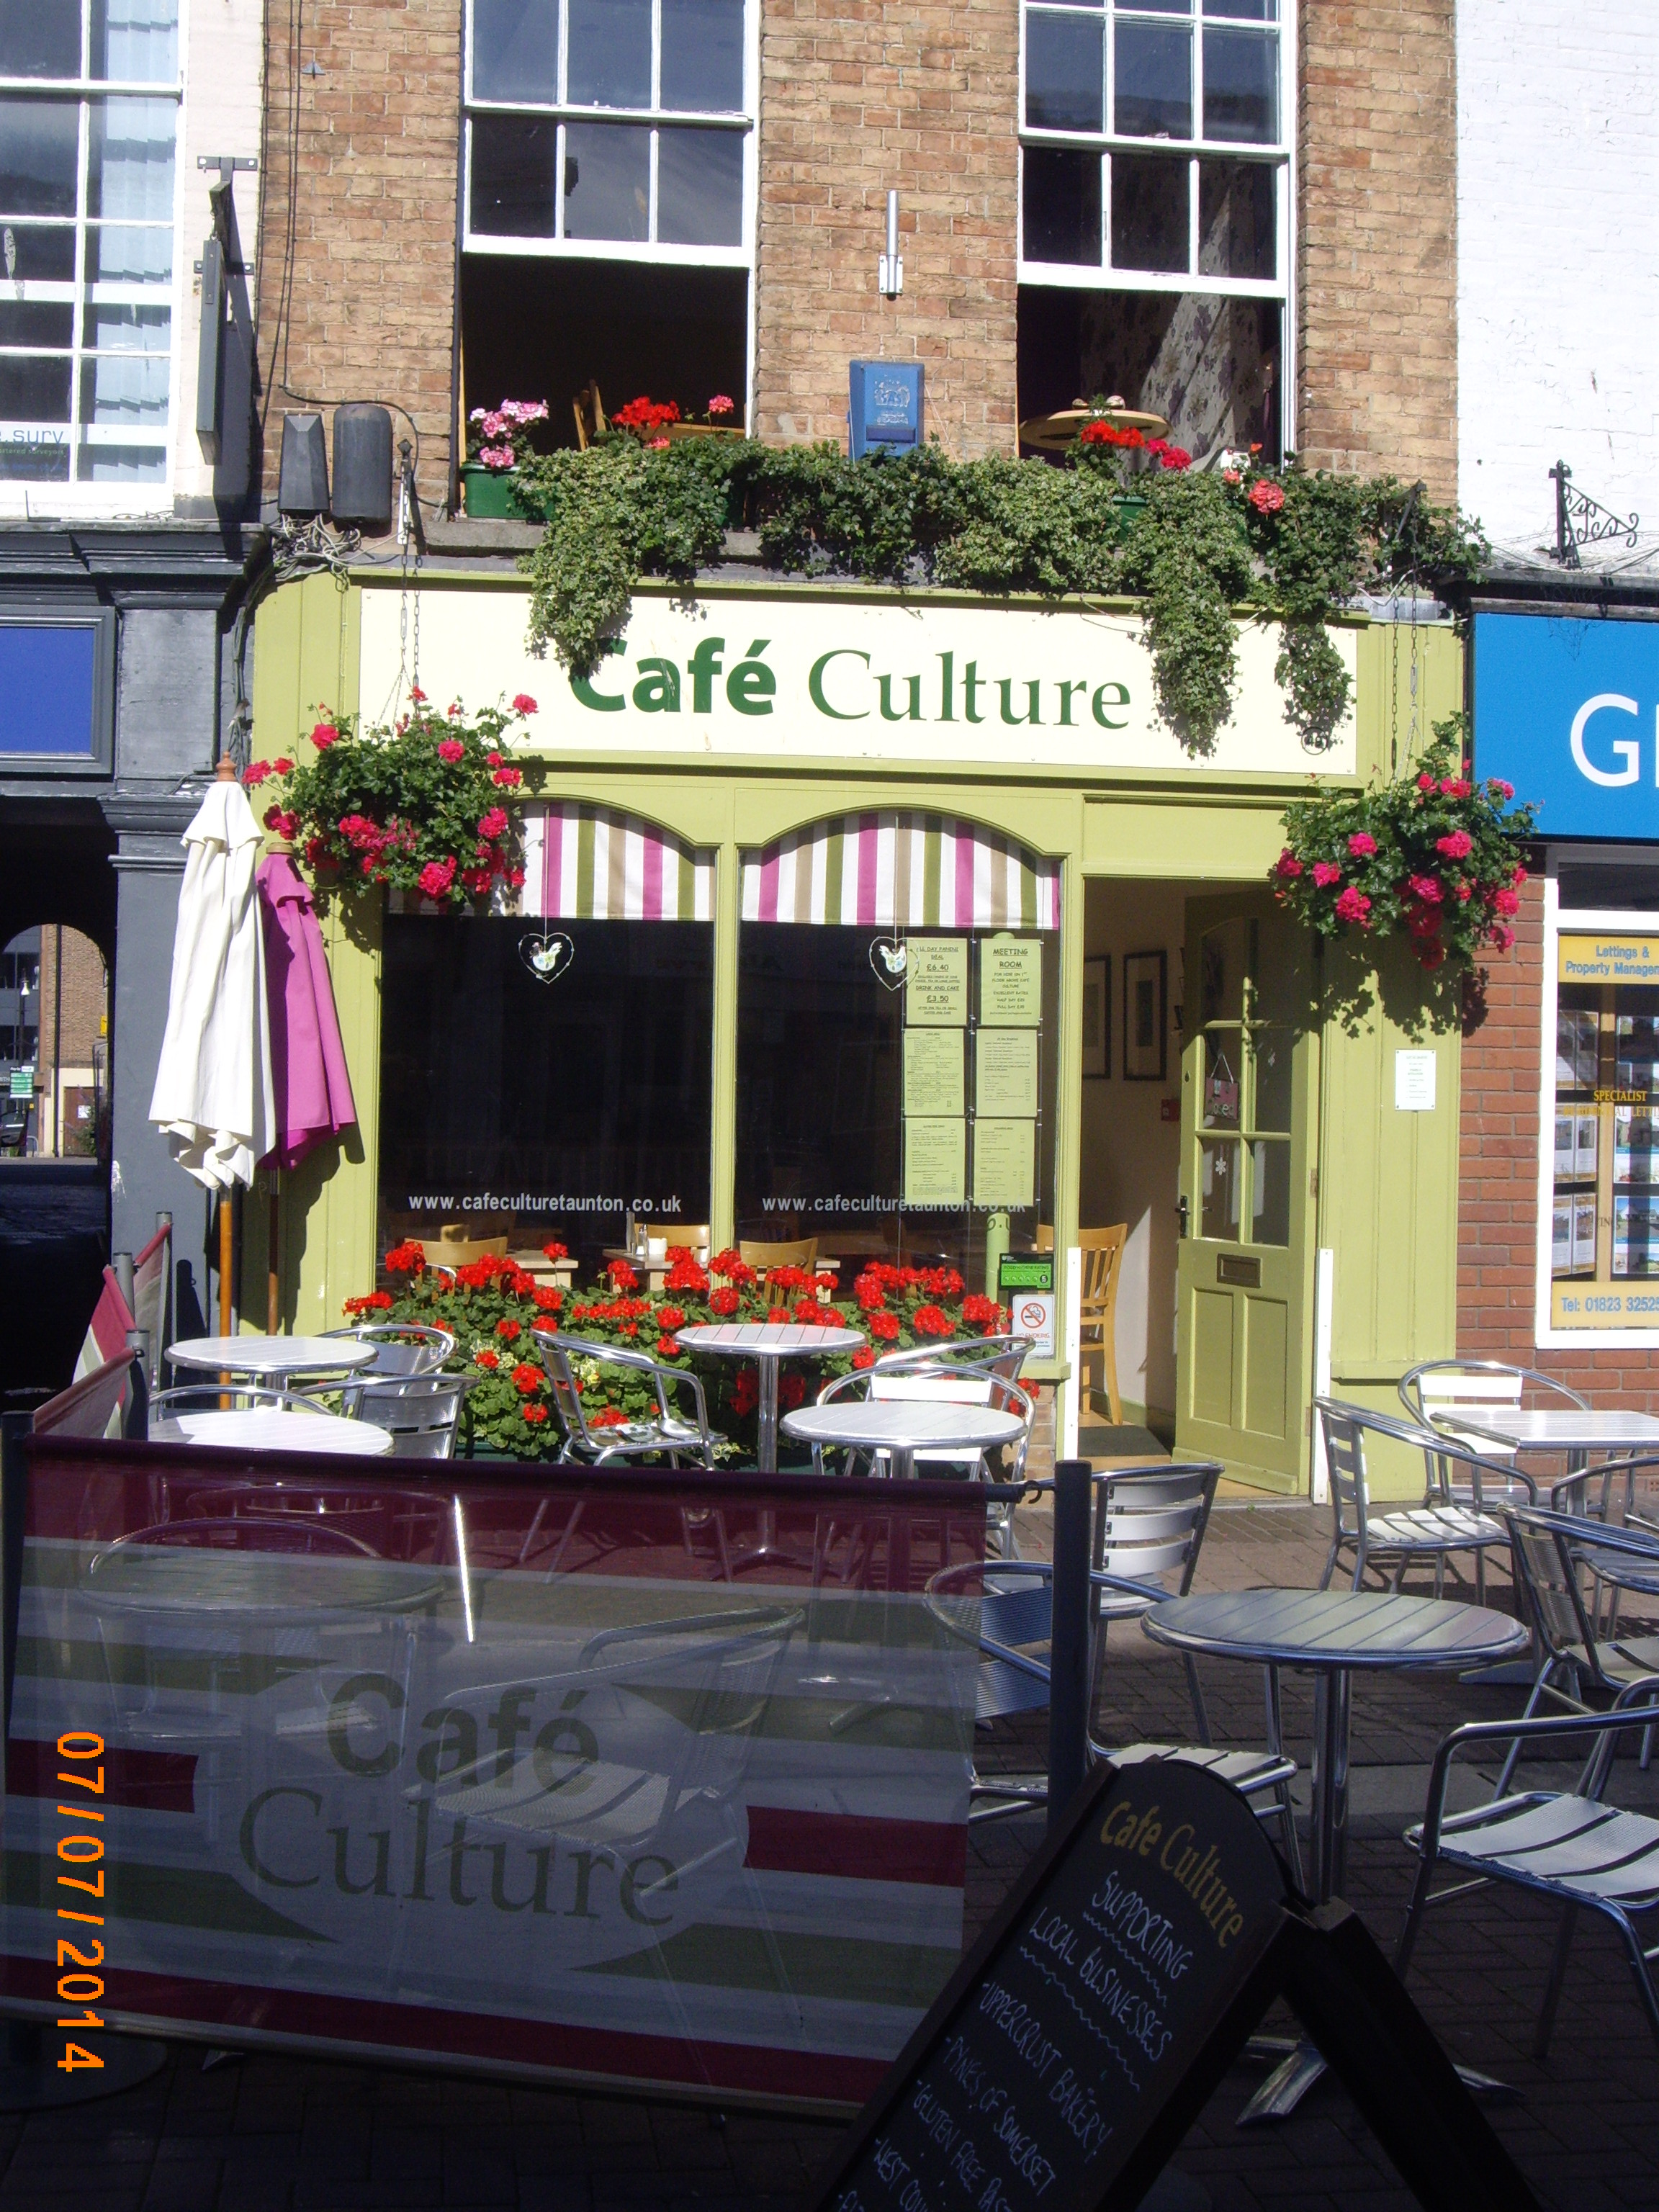 Cafe Culture, High Street, Taunton.